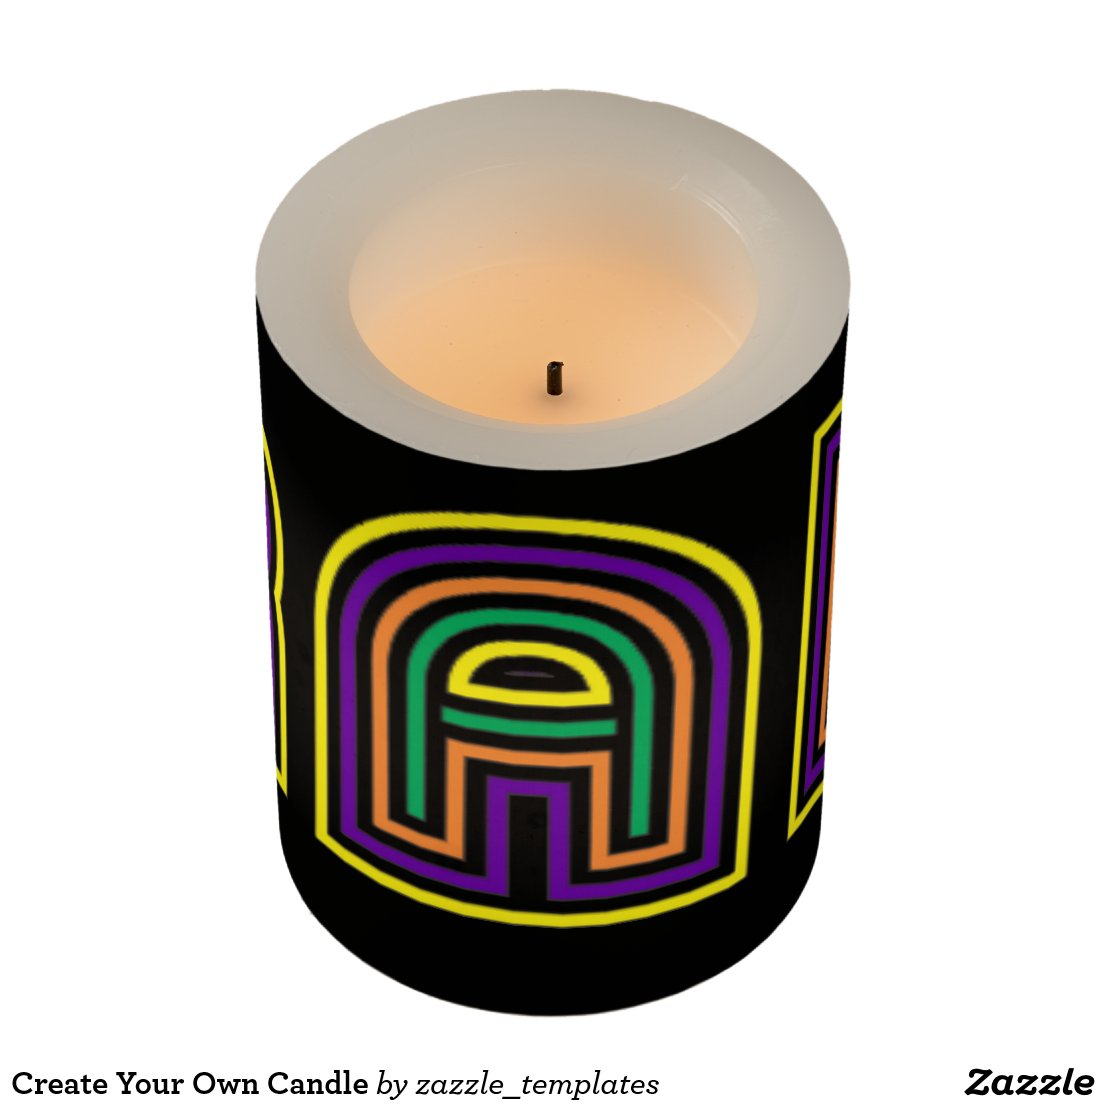 RAK Candle - front view